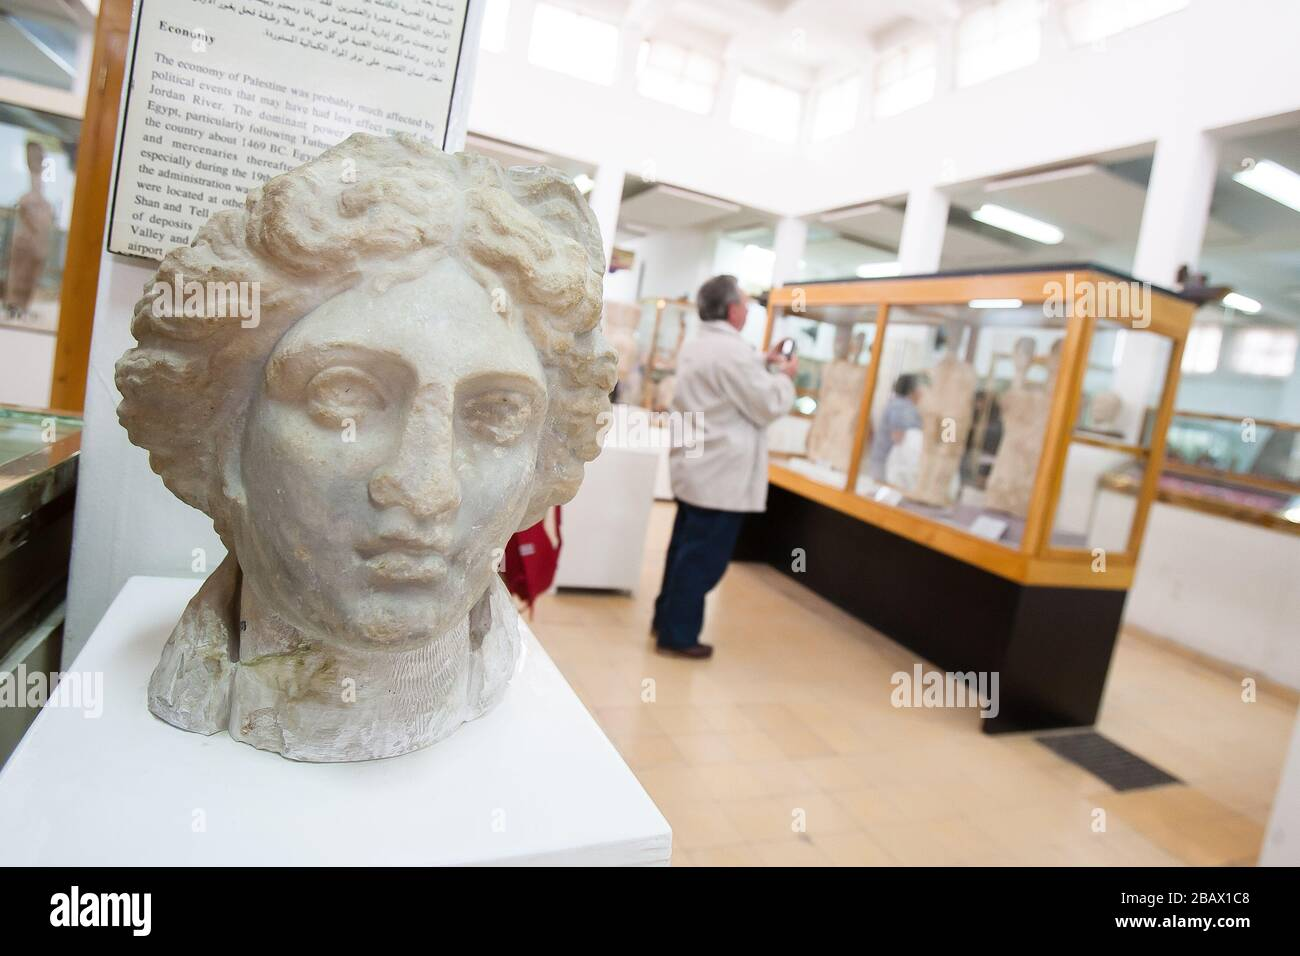 Amman, Jordan, May 3, 2009: A Roman sculpture of a head is on display at the Jordan Archeological Museum in the Amman Citadel. Stock Photo